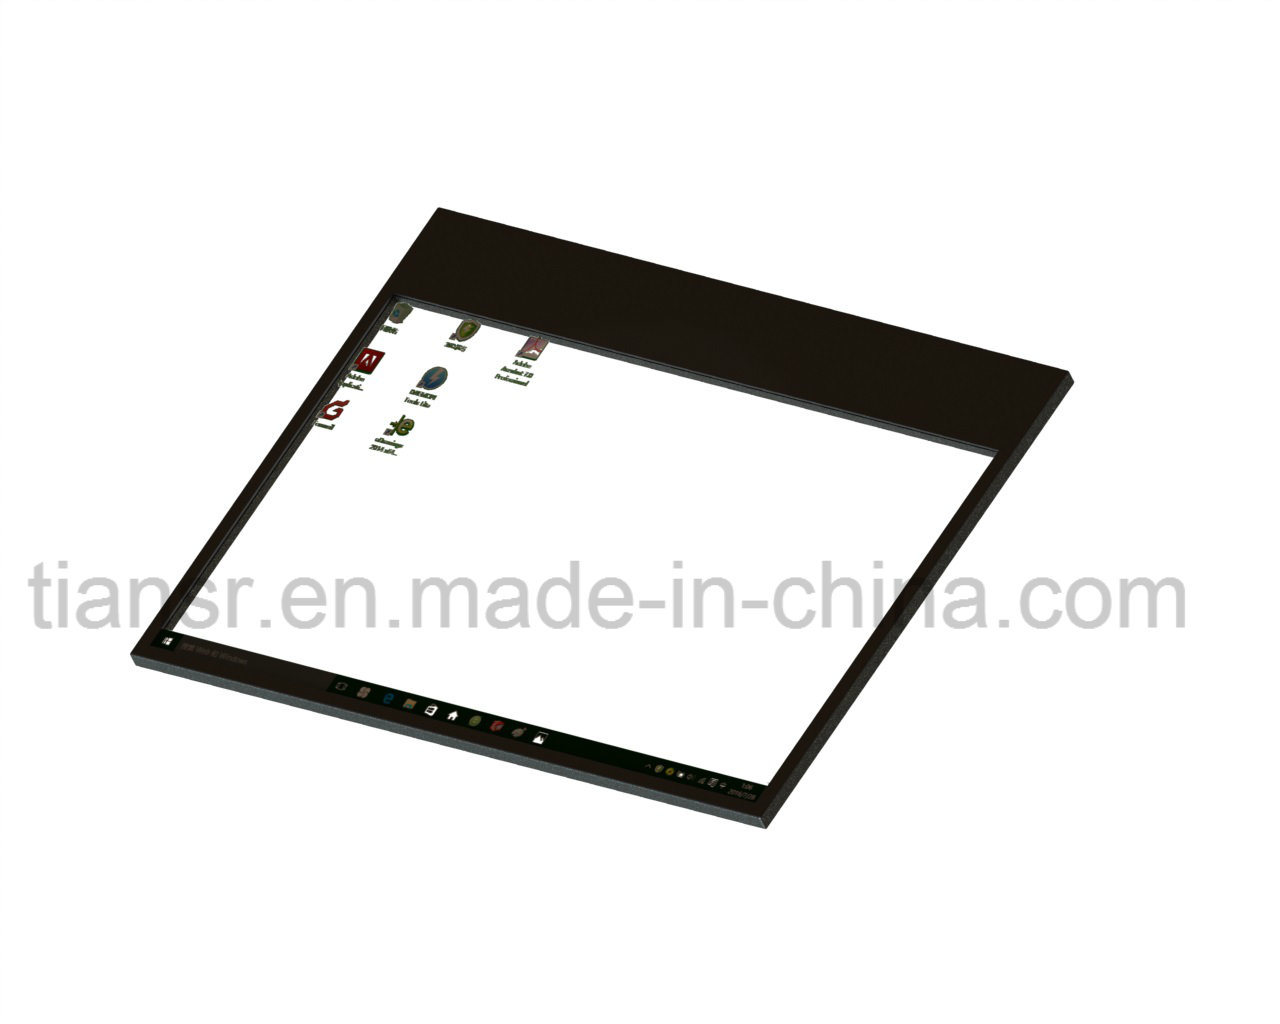 22 Inch Transparent Display with Easy Install Design